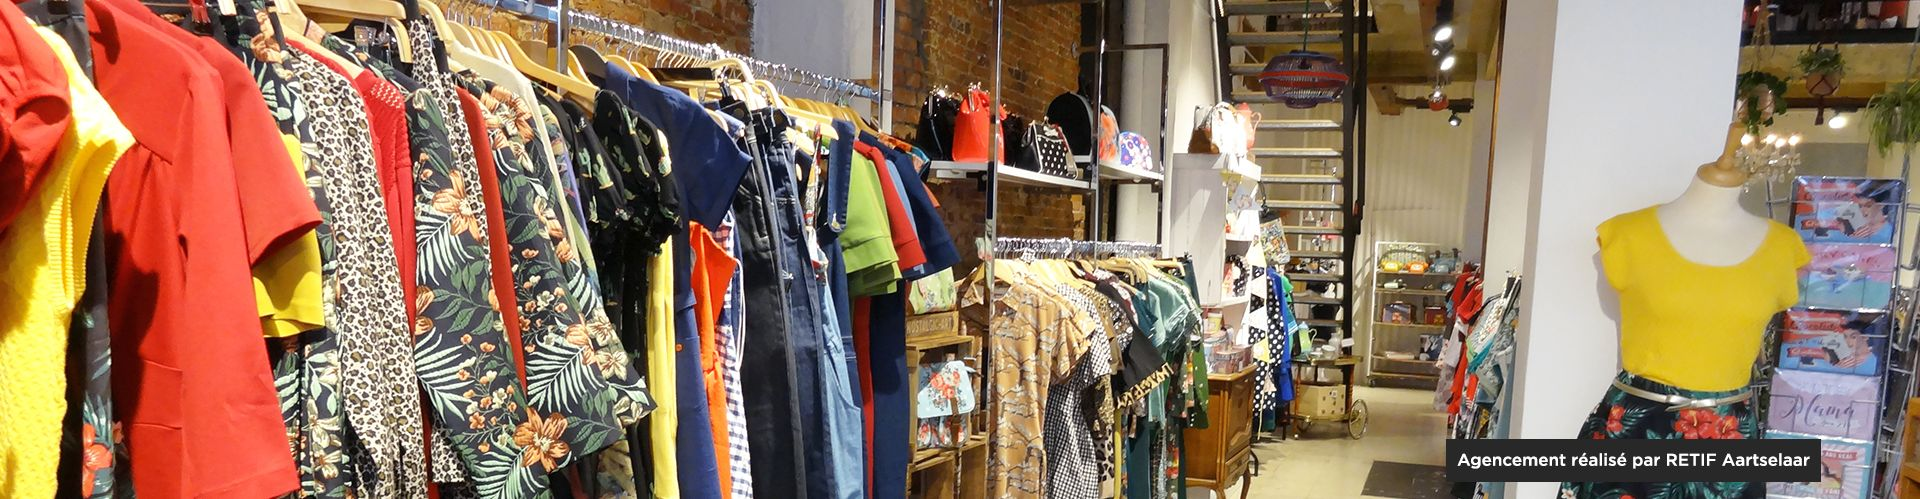 Agencement magasin mode femme retro